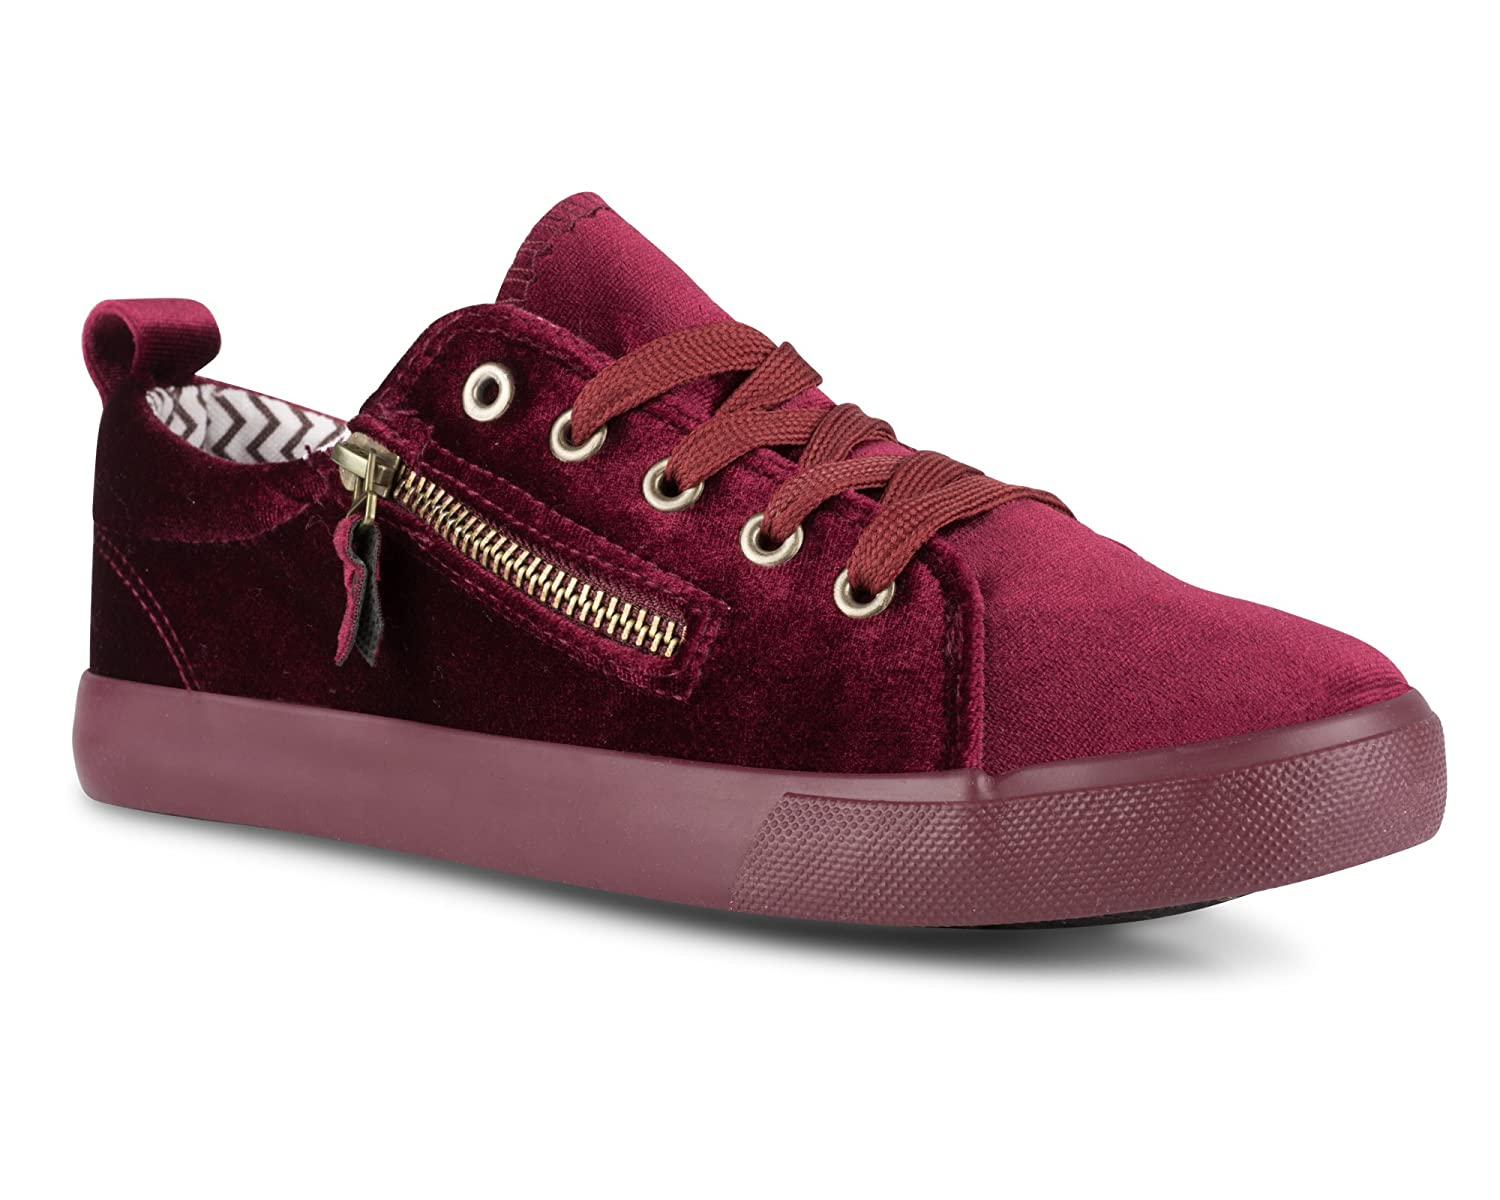 Twisted Women's Alley Faux Leather Fashion Sneaker with Decorative Zipper B074F3YX65 6.5 B(M) US|Burgundy Velvet